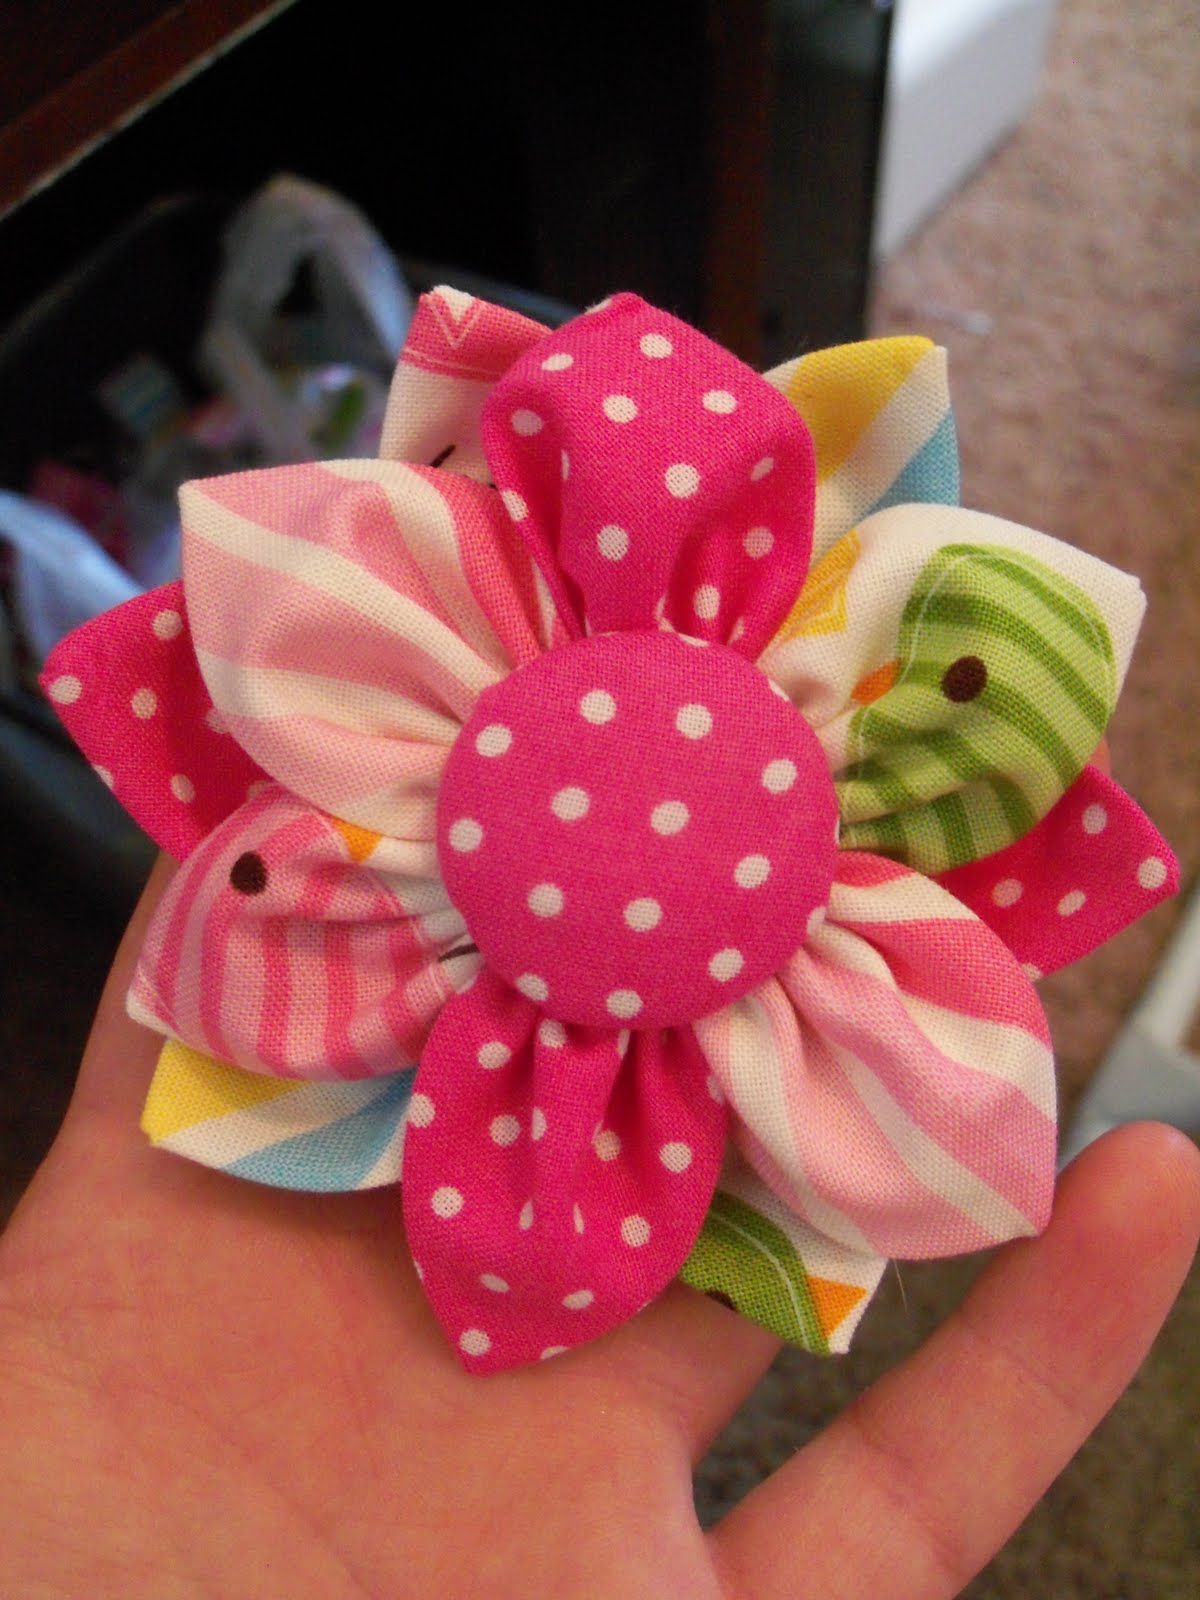 Our Little Life Fabric Flower Tutorial